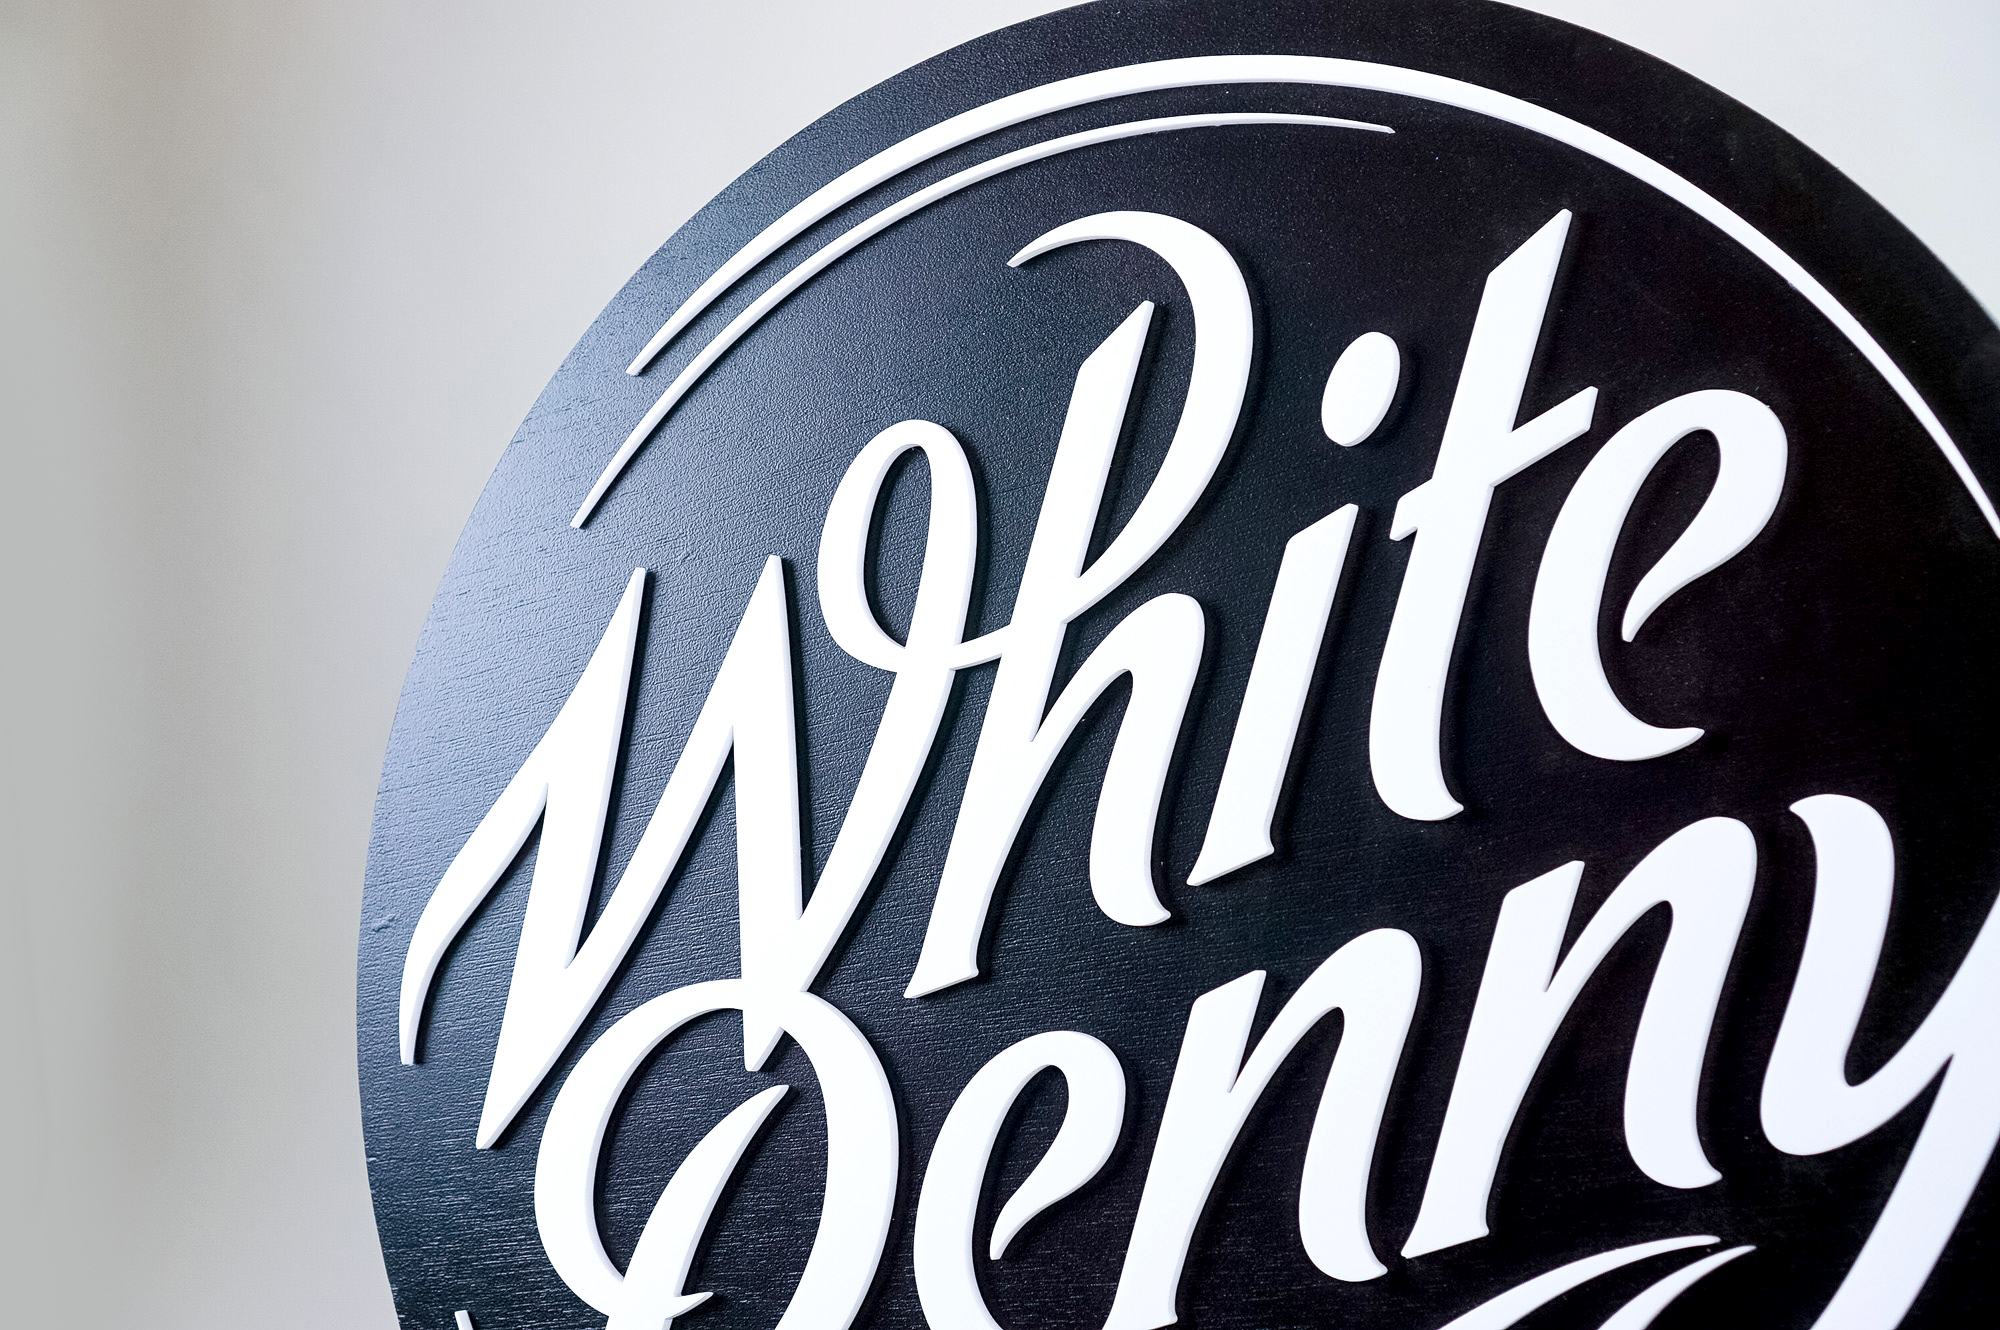 Black and white round raised sign with intricate lettering for Whitepenny, a web development, design and branding firm based in New Jersey.